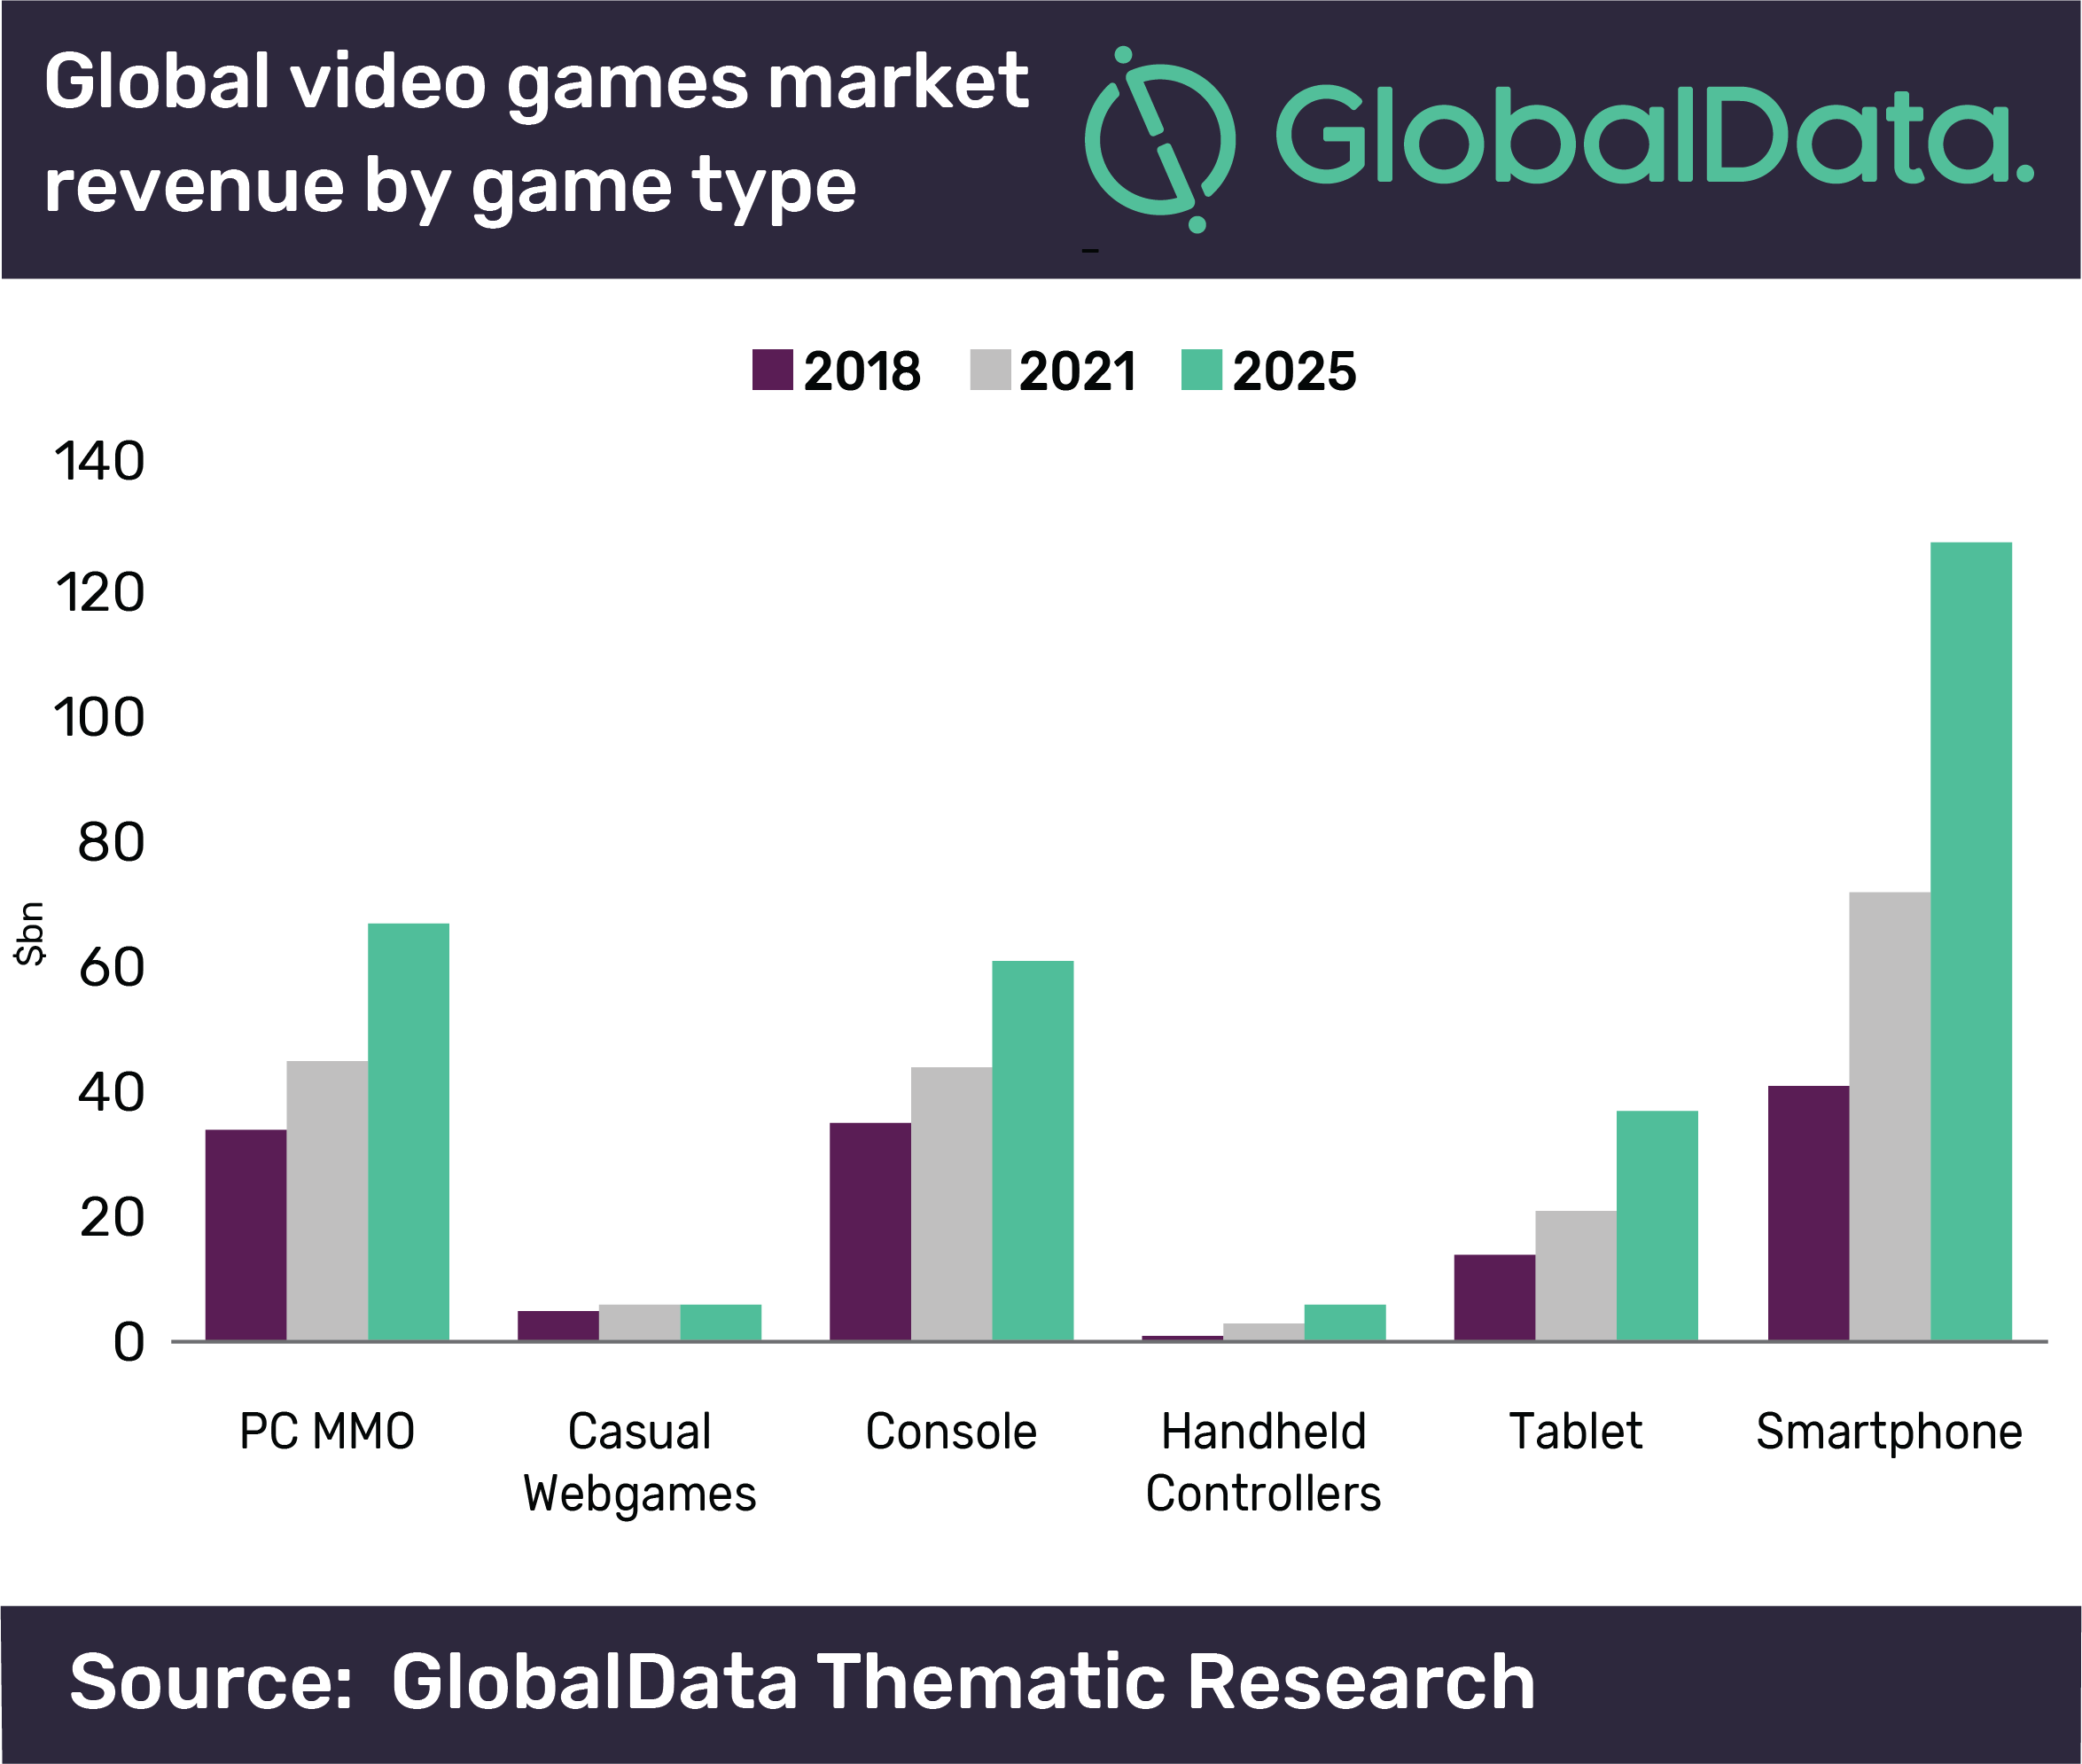 Global Video Games market revenue by game type.